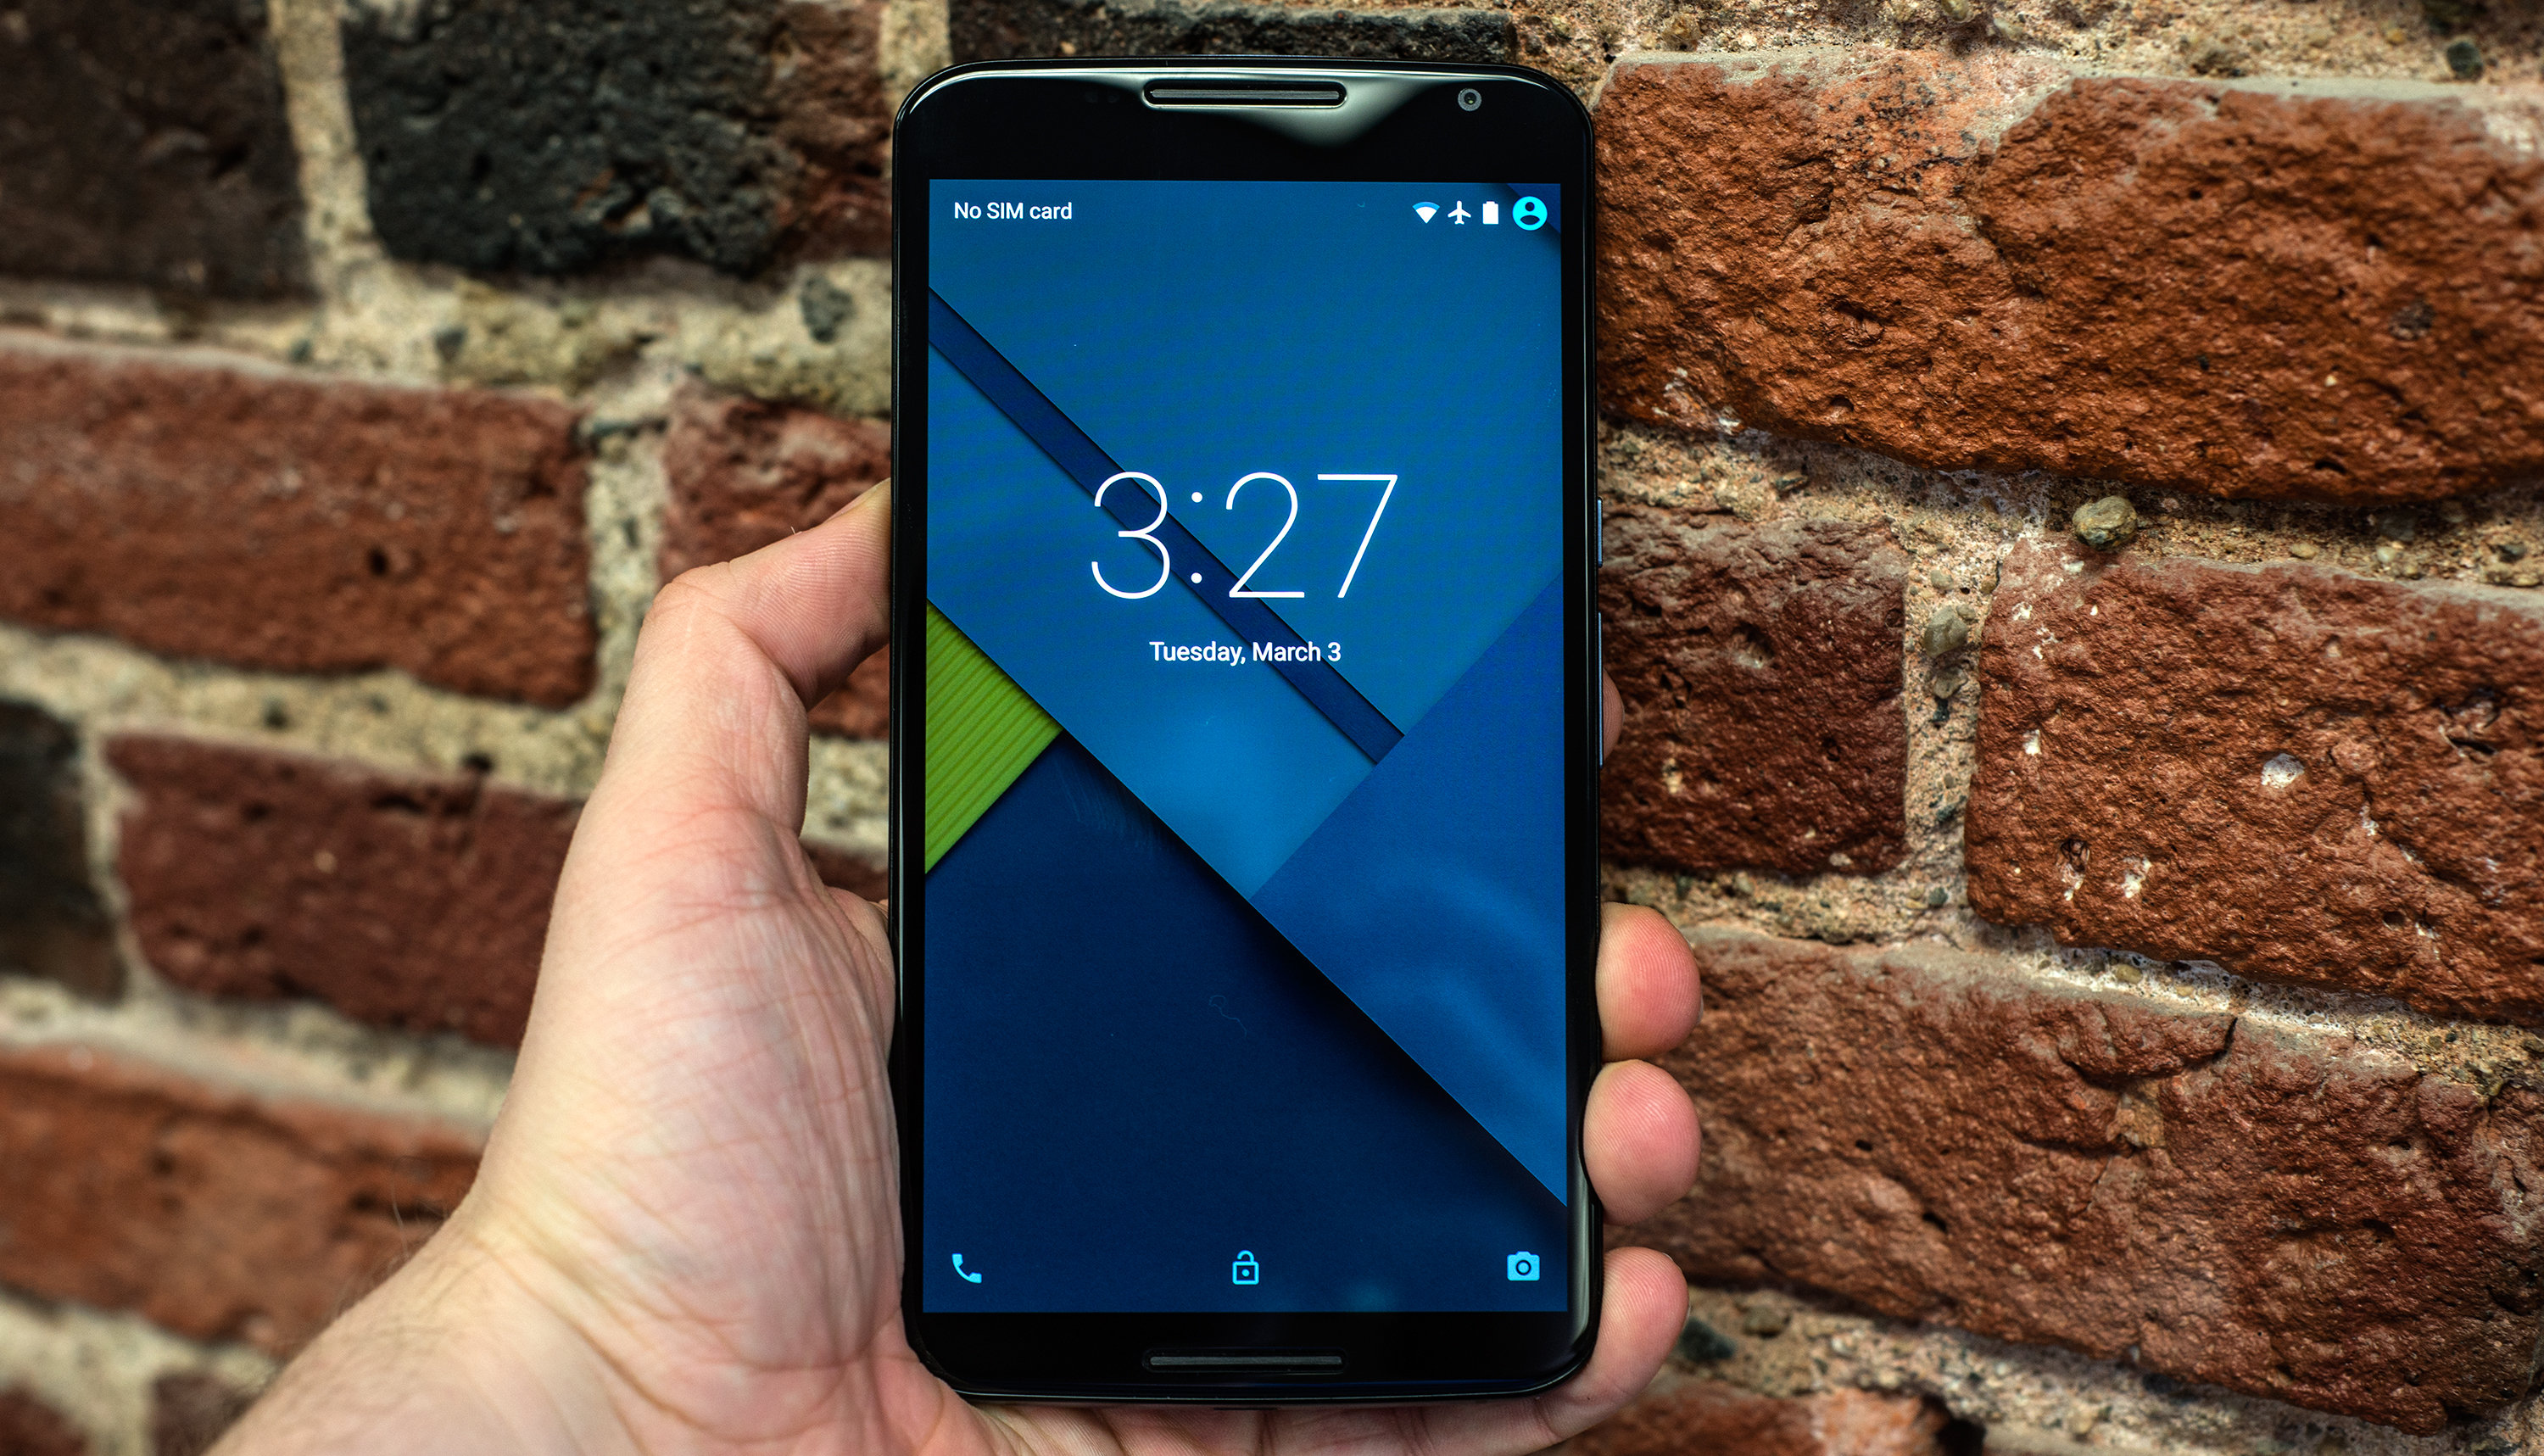 A photo of the Google Nexus 6 in a hand.